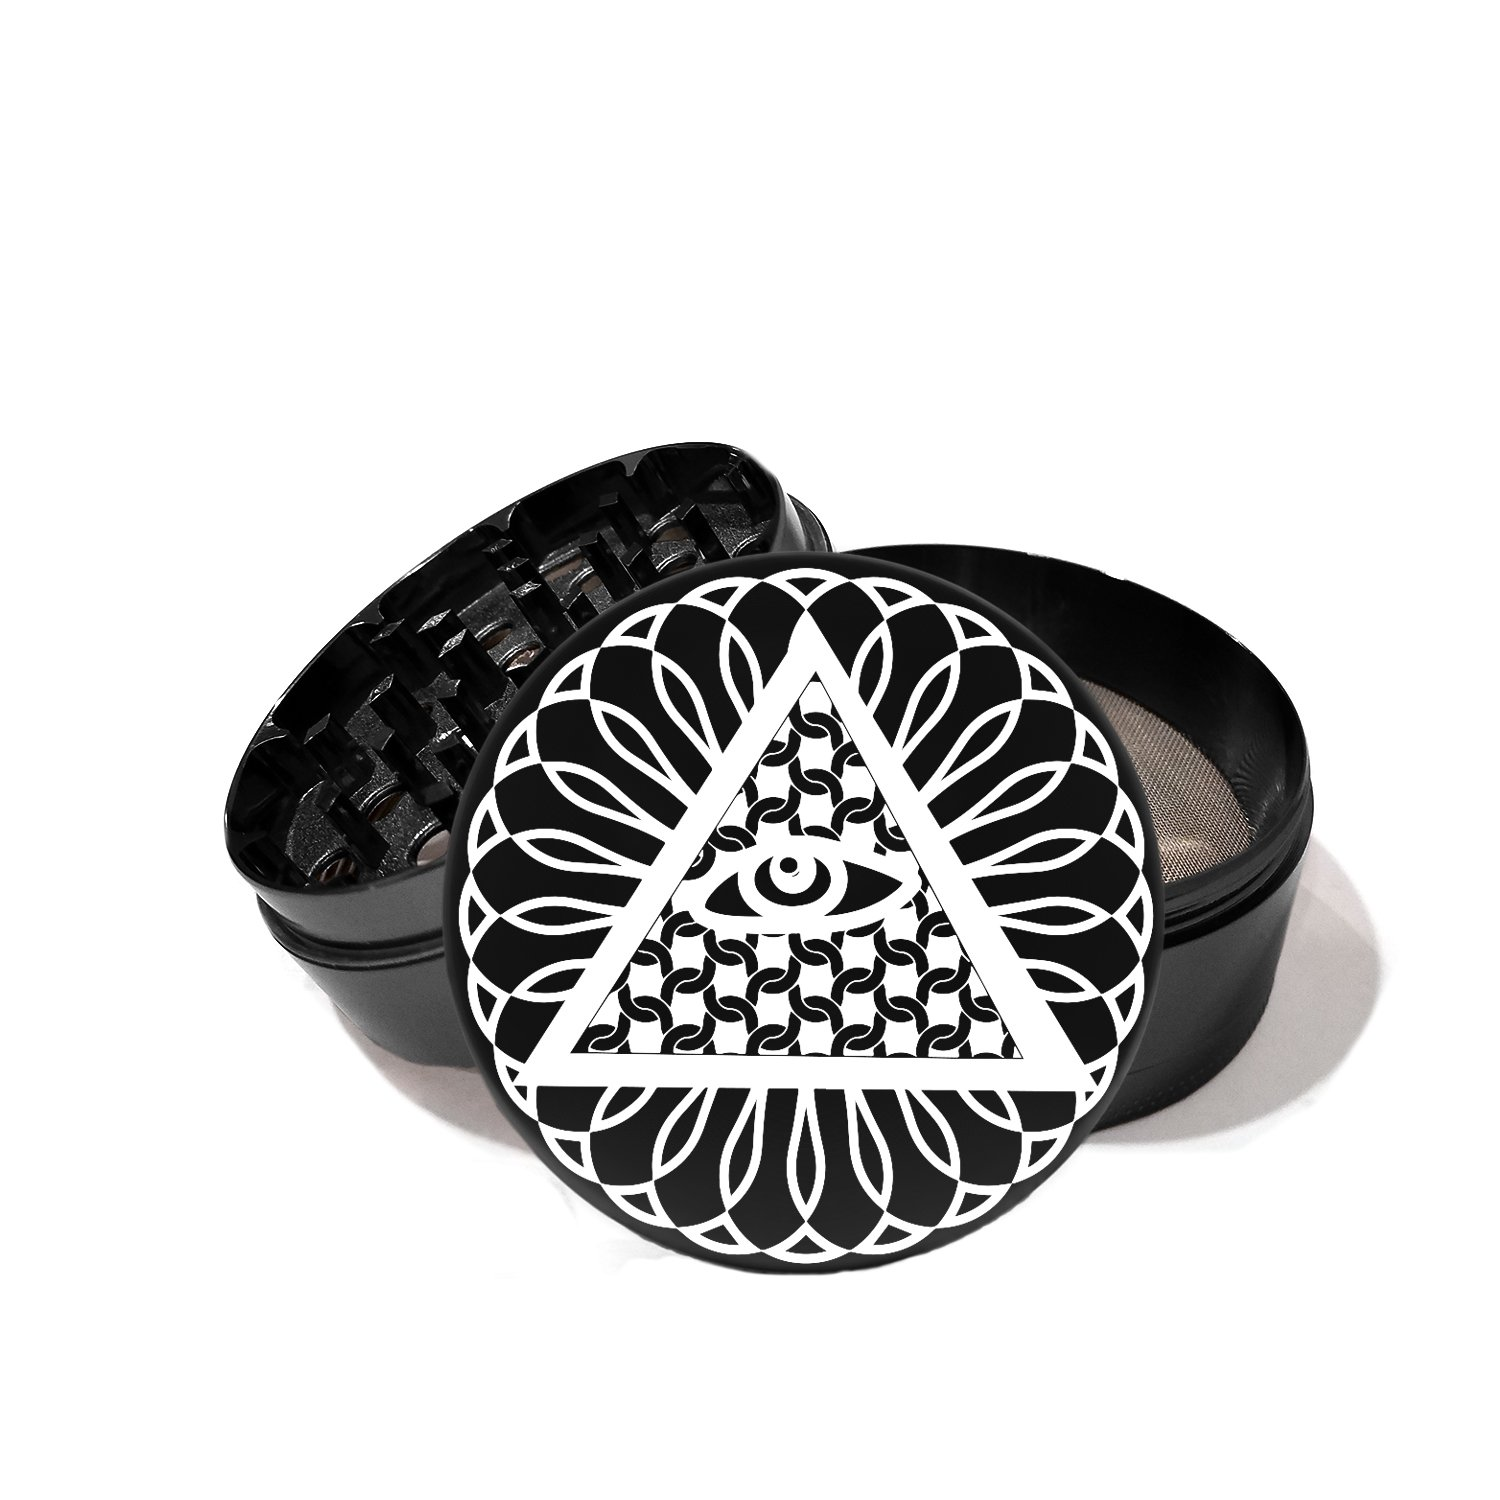 Egyptian All Seeing Eye Pyramid - Laser Etched Grinder